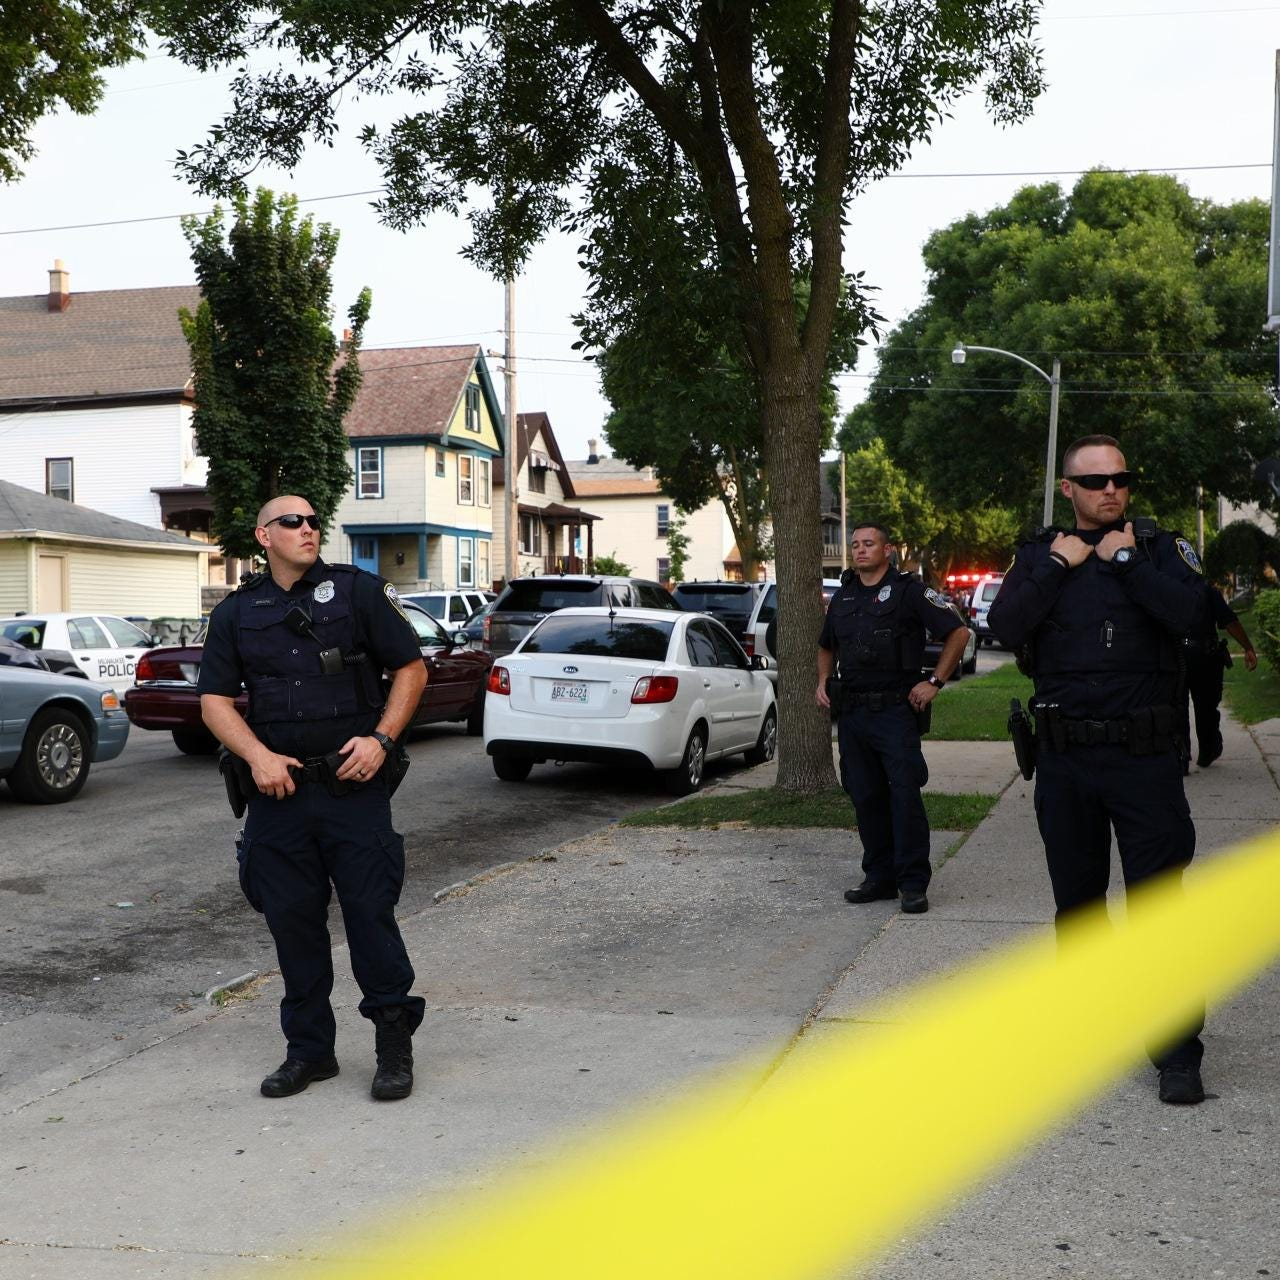 Officers shoot, kill suspect who pulled a gun during traffic stop, Milwaukee police say